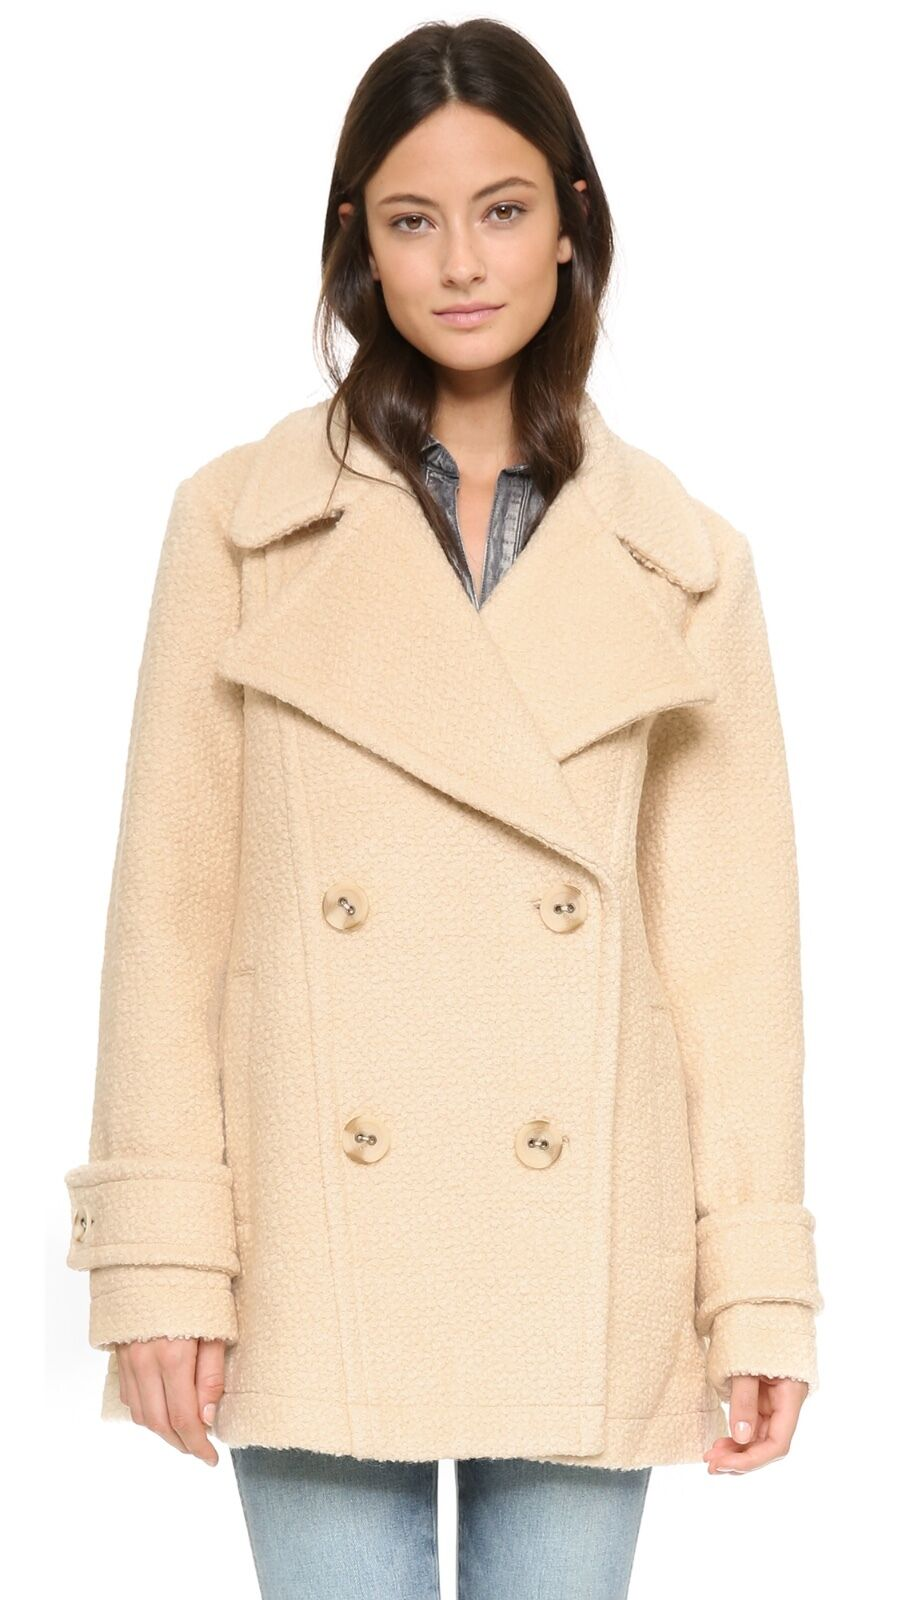 Free People Ivory Boucle Wool Harnie Collar Peacoat Size Large NWOT S O